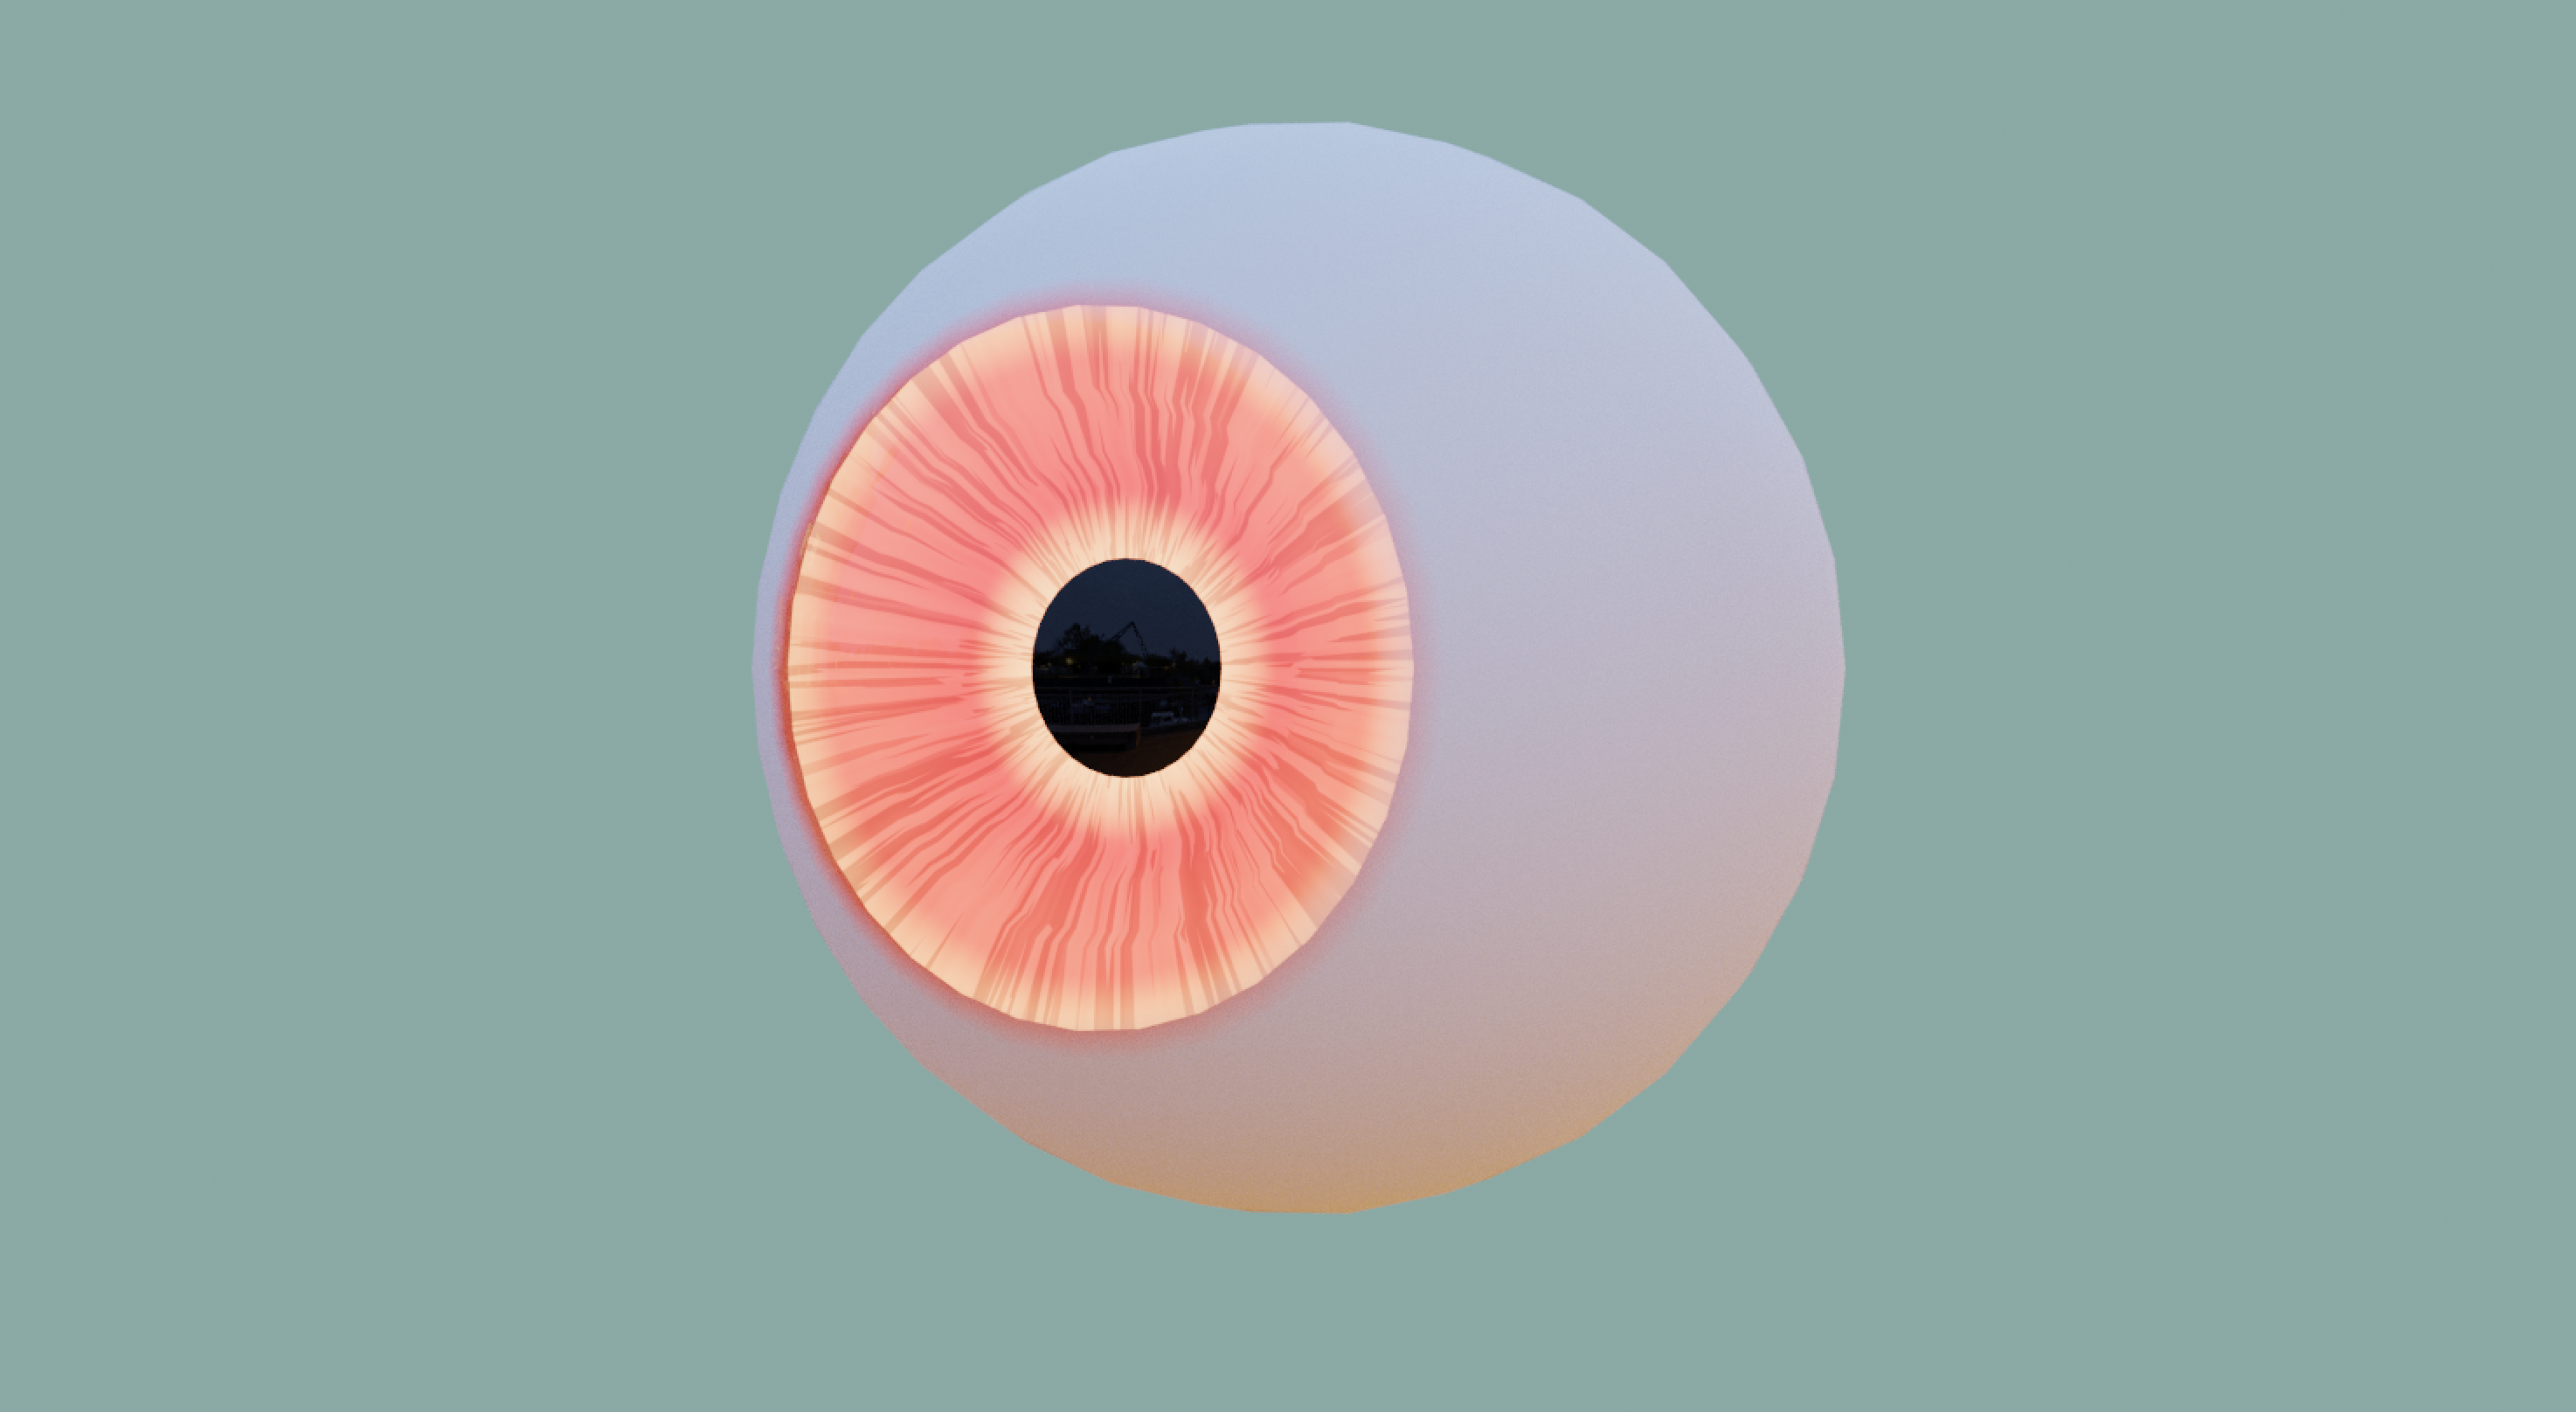 Cartoon // Real Eyes - Model and Materials preview image 5